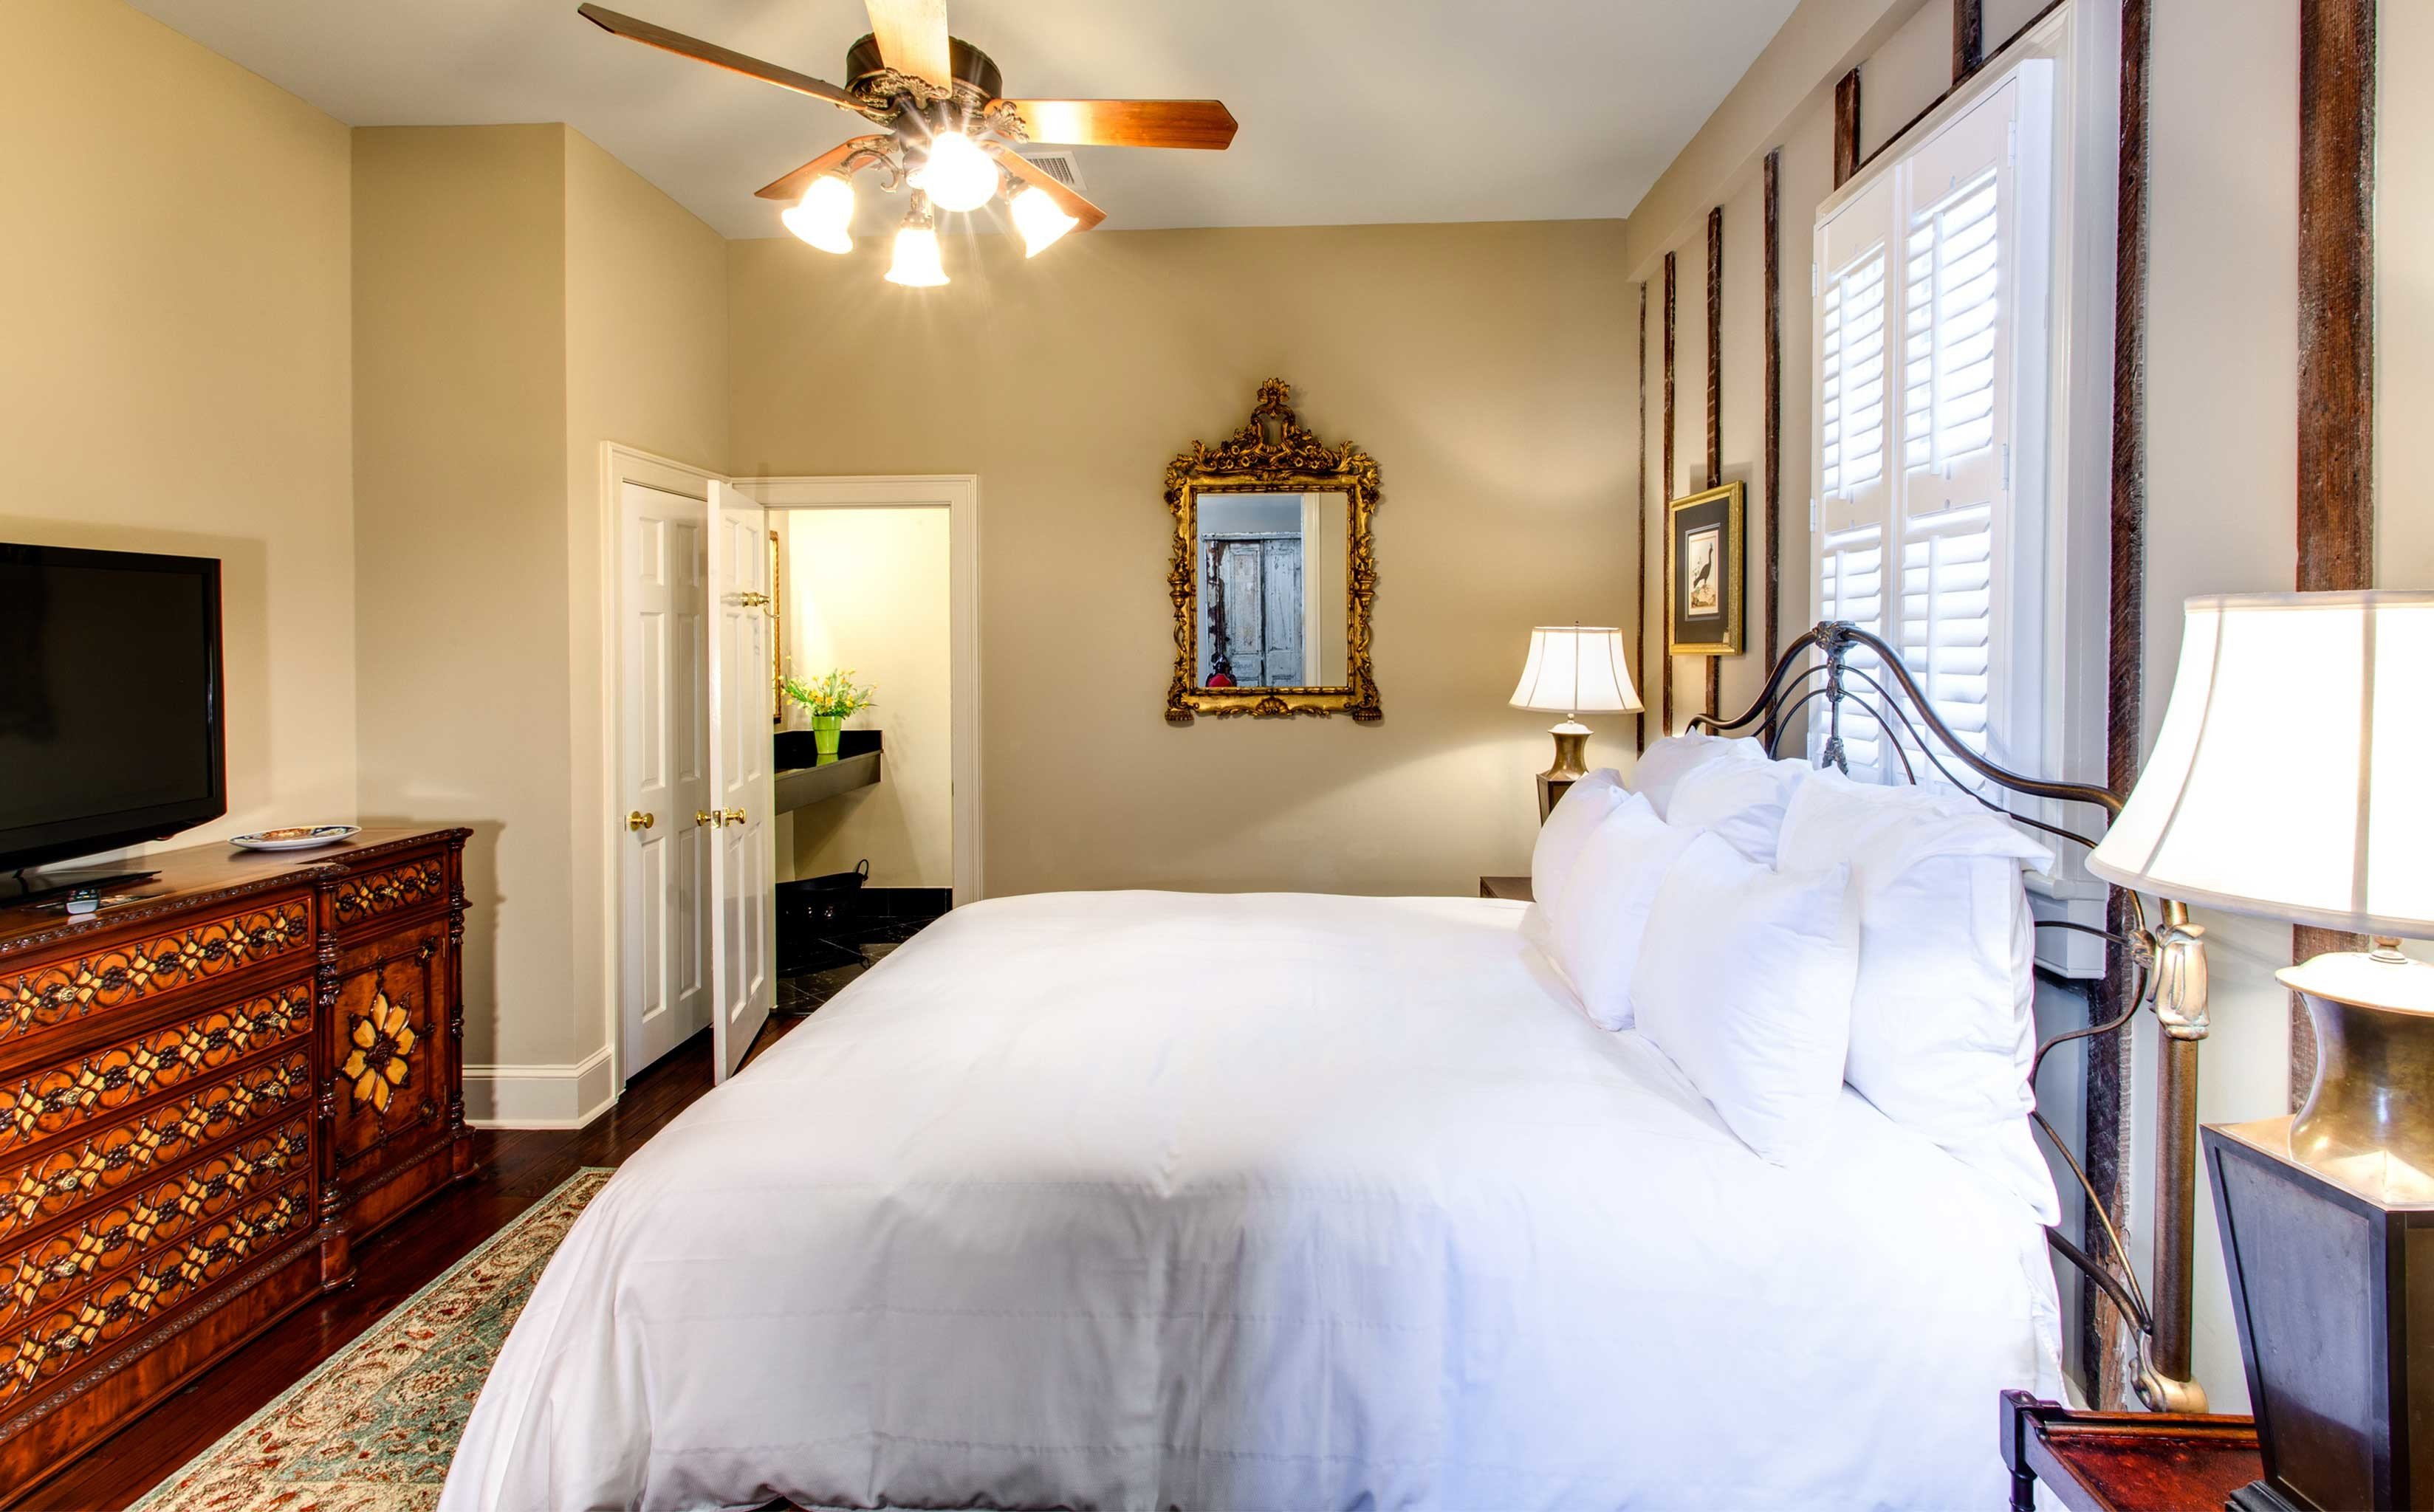 B&B Bedroom Cultural Drink Eat Entertainment Nightlife property home scene cottage Suite farmhouse